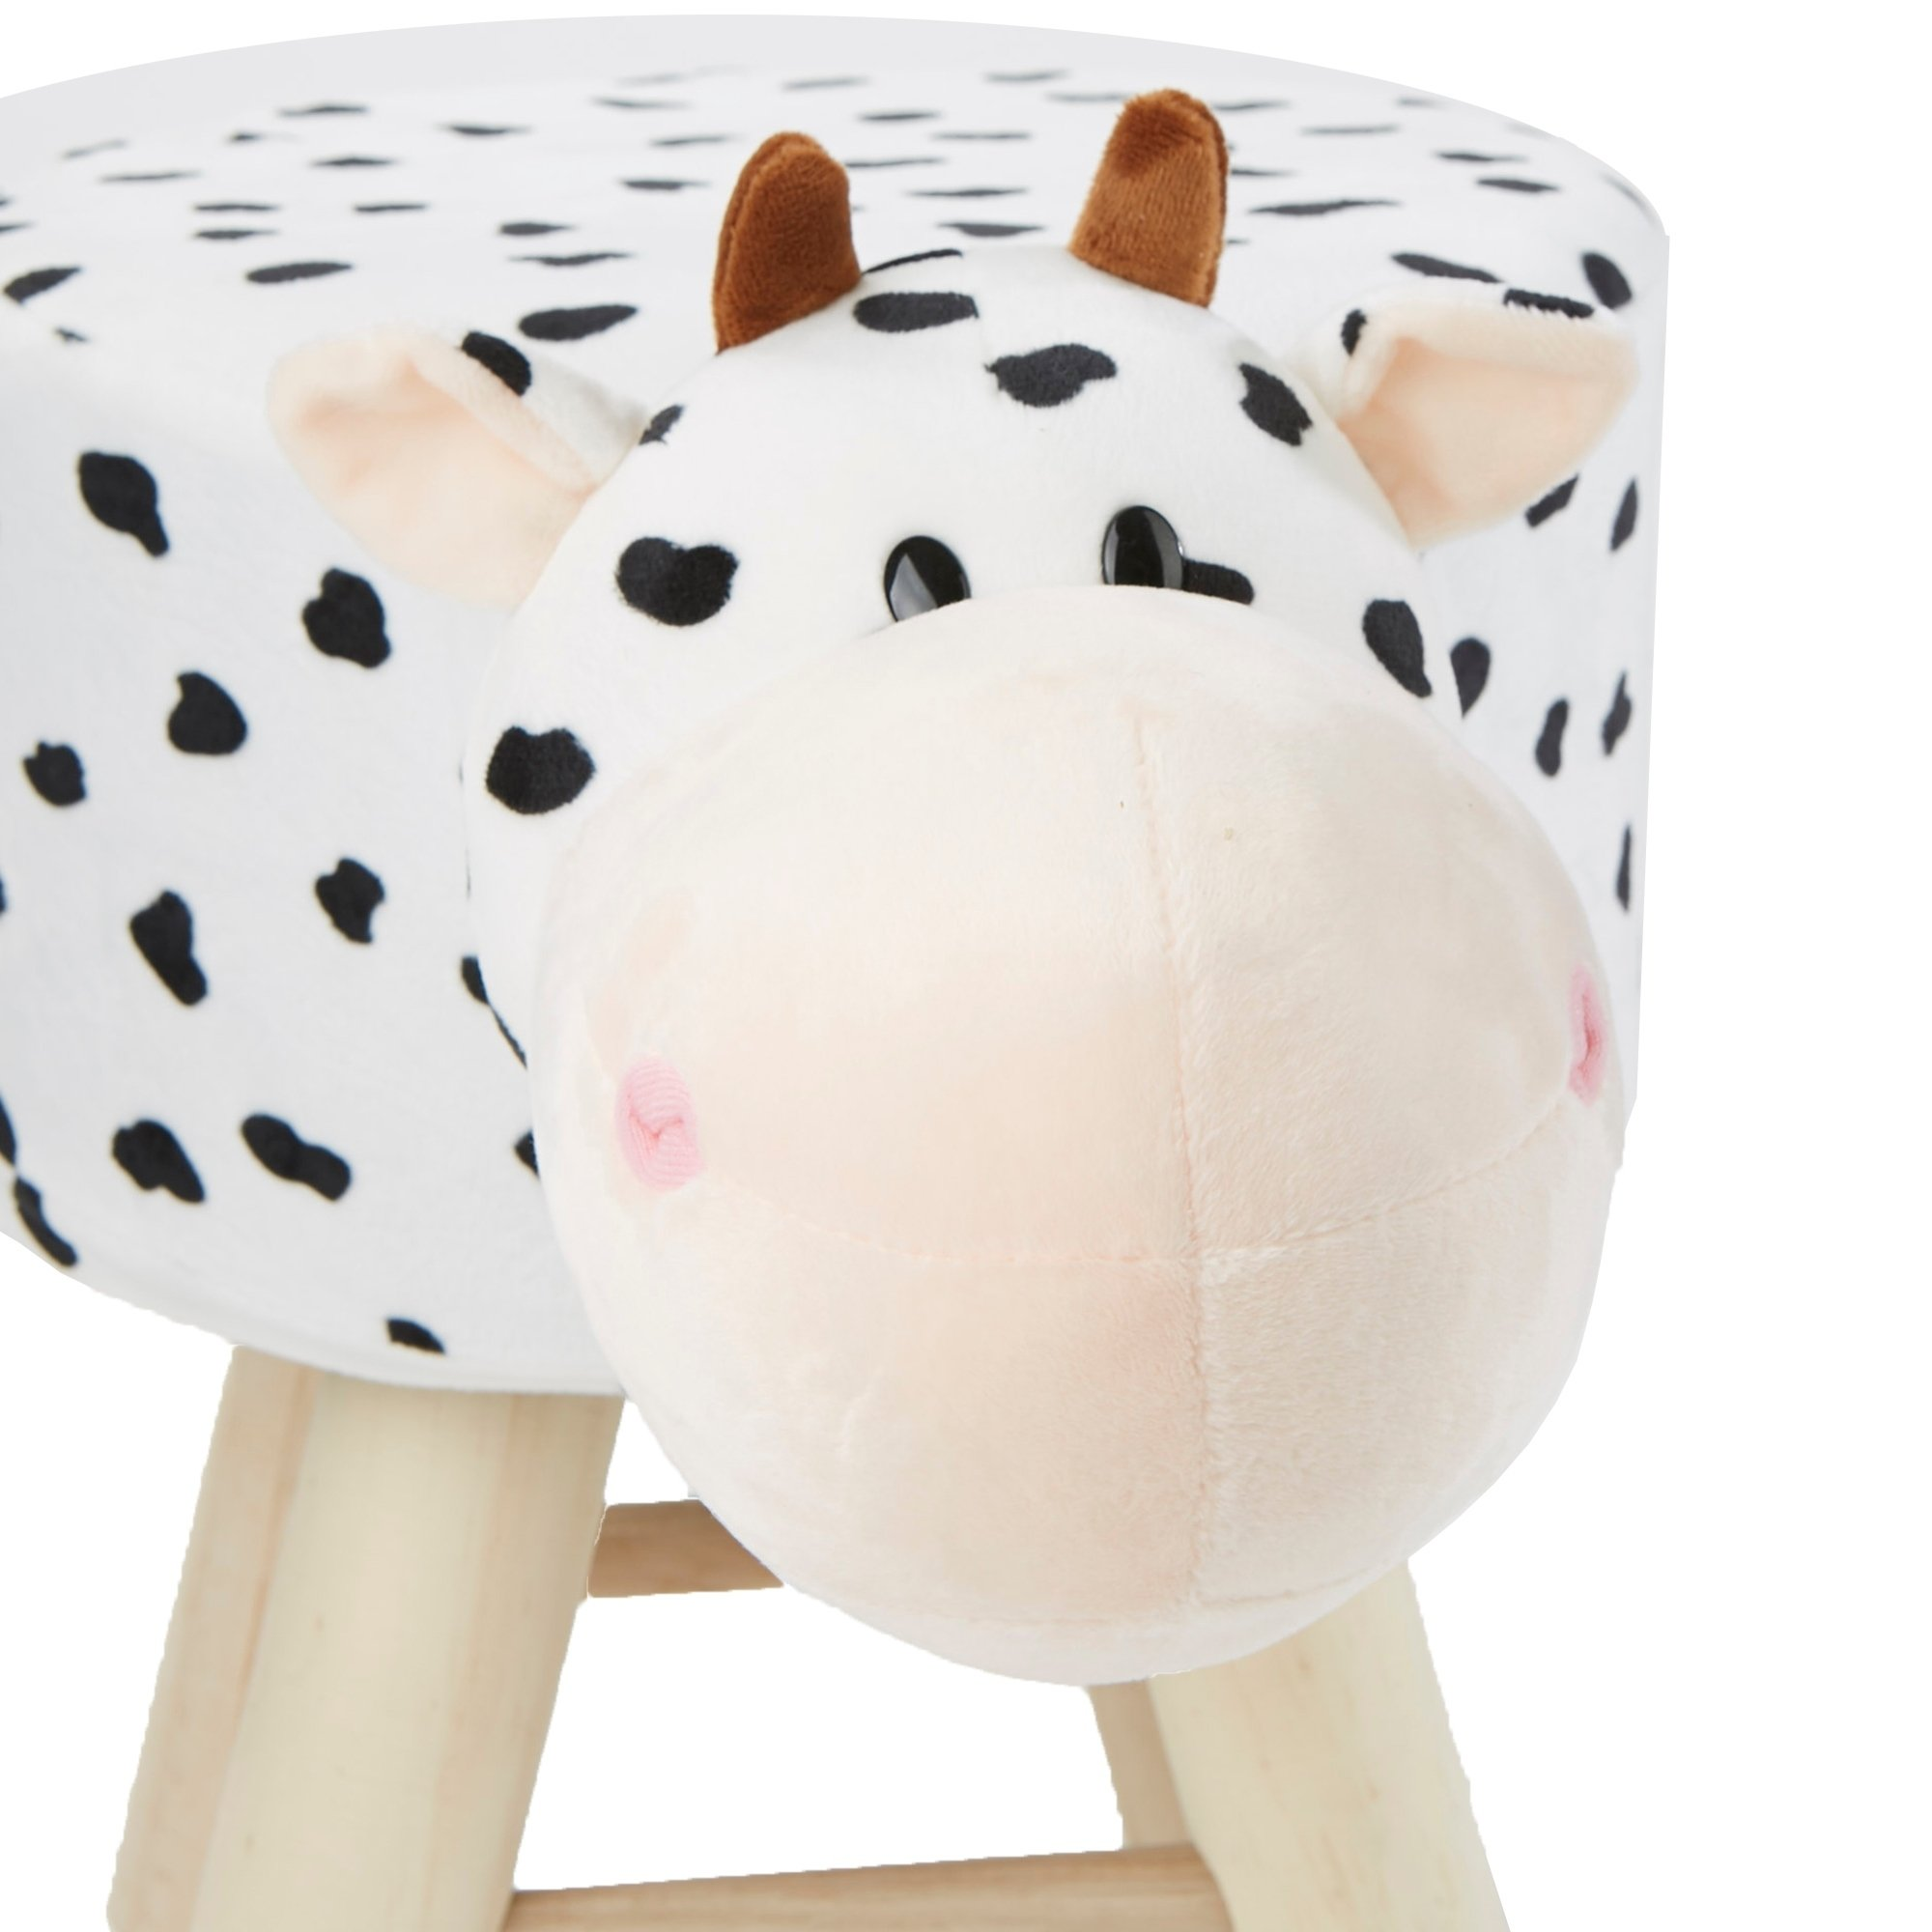 Svitlife Mind Reader Children's Favorite Cow Animal Stool, Chair, Ottoman, Foot Rest, White Ottoman Chair Rest Stool Foot Seat Footrest Footstool Storage Leather